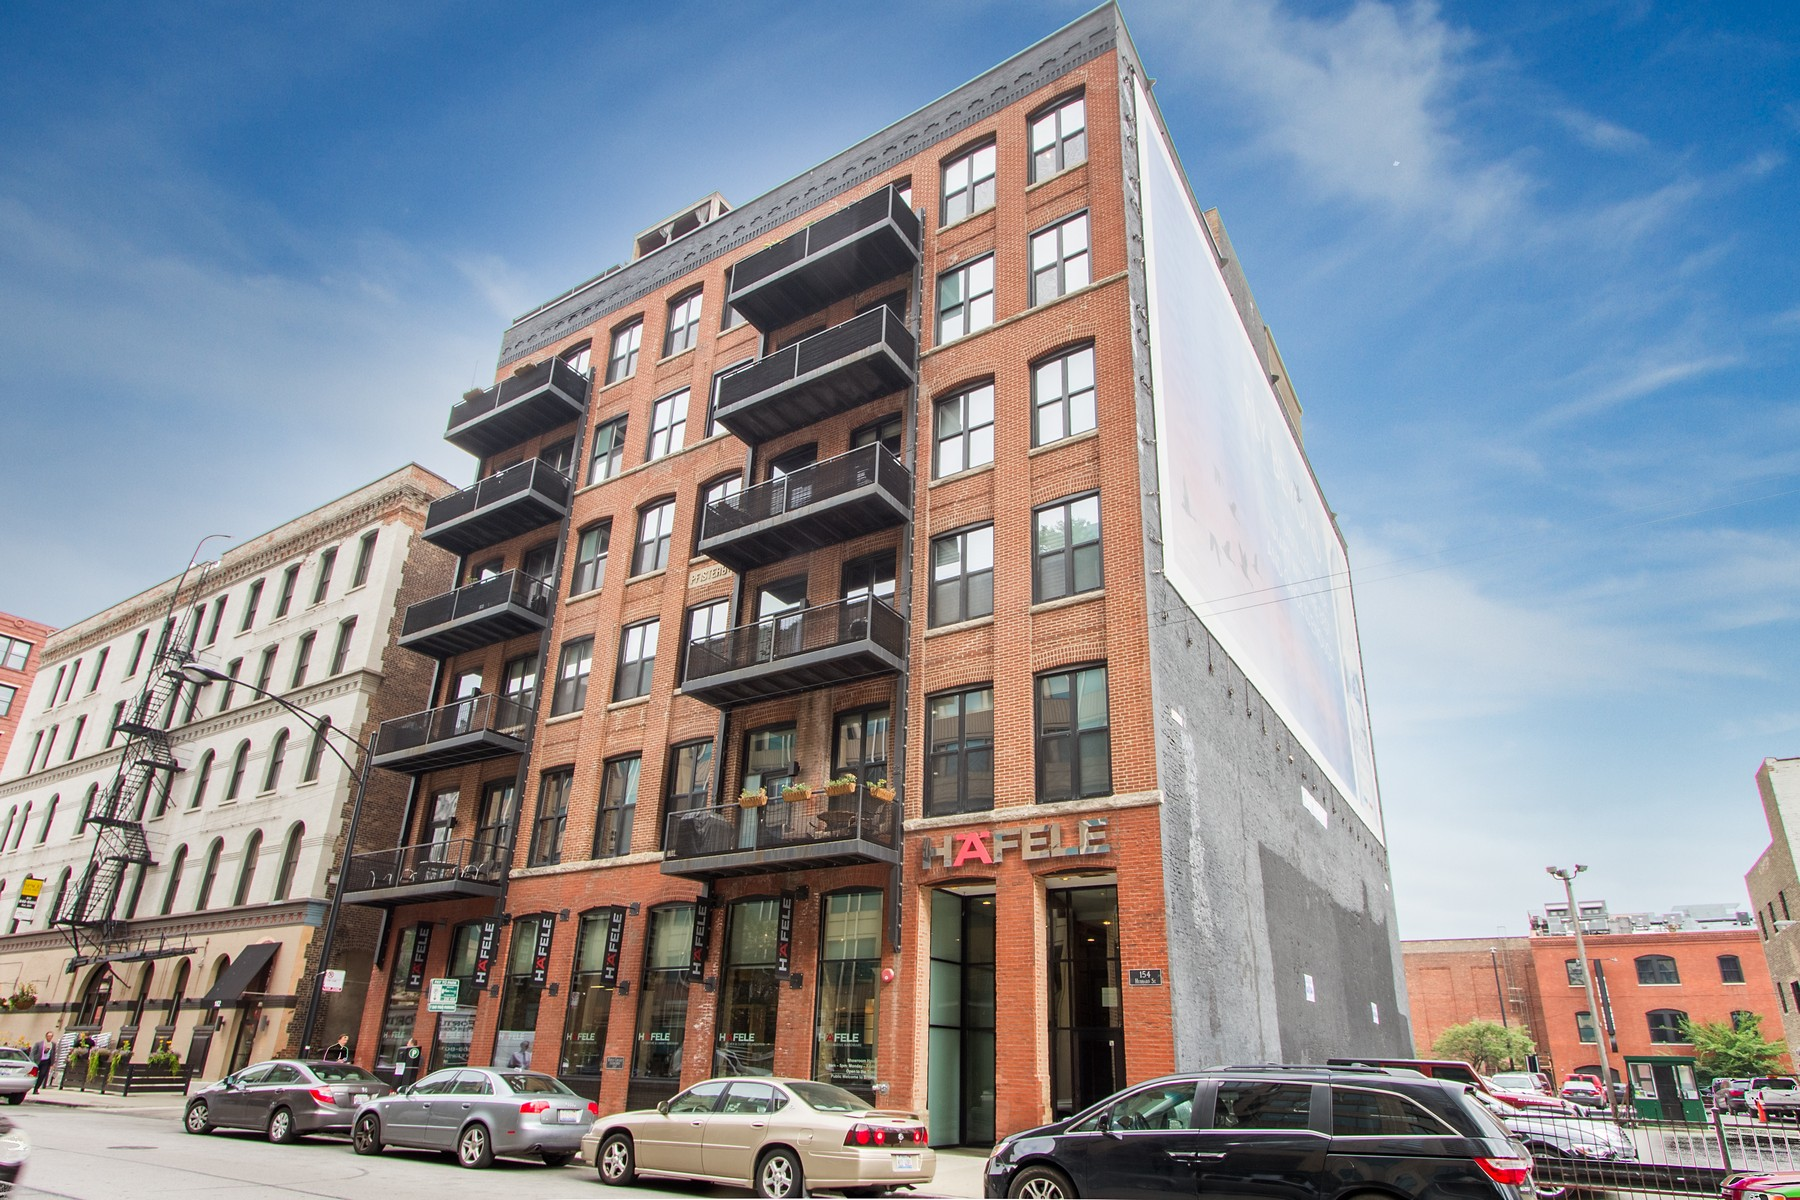 Copropriété pour l Vente à One Of A Kind River North Loft Penthouse With Private Roof Deck 154 W Hubbard Street Unit 601 Near North Side, Chicago, Illinois 60654 États-Unis